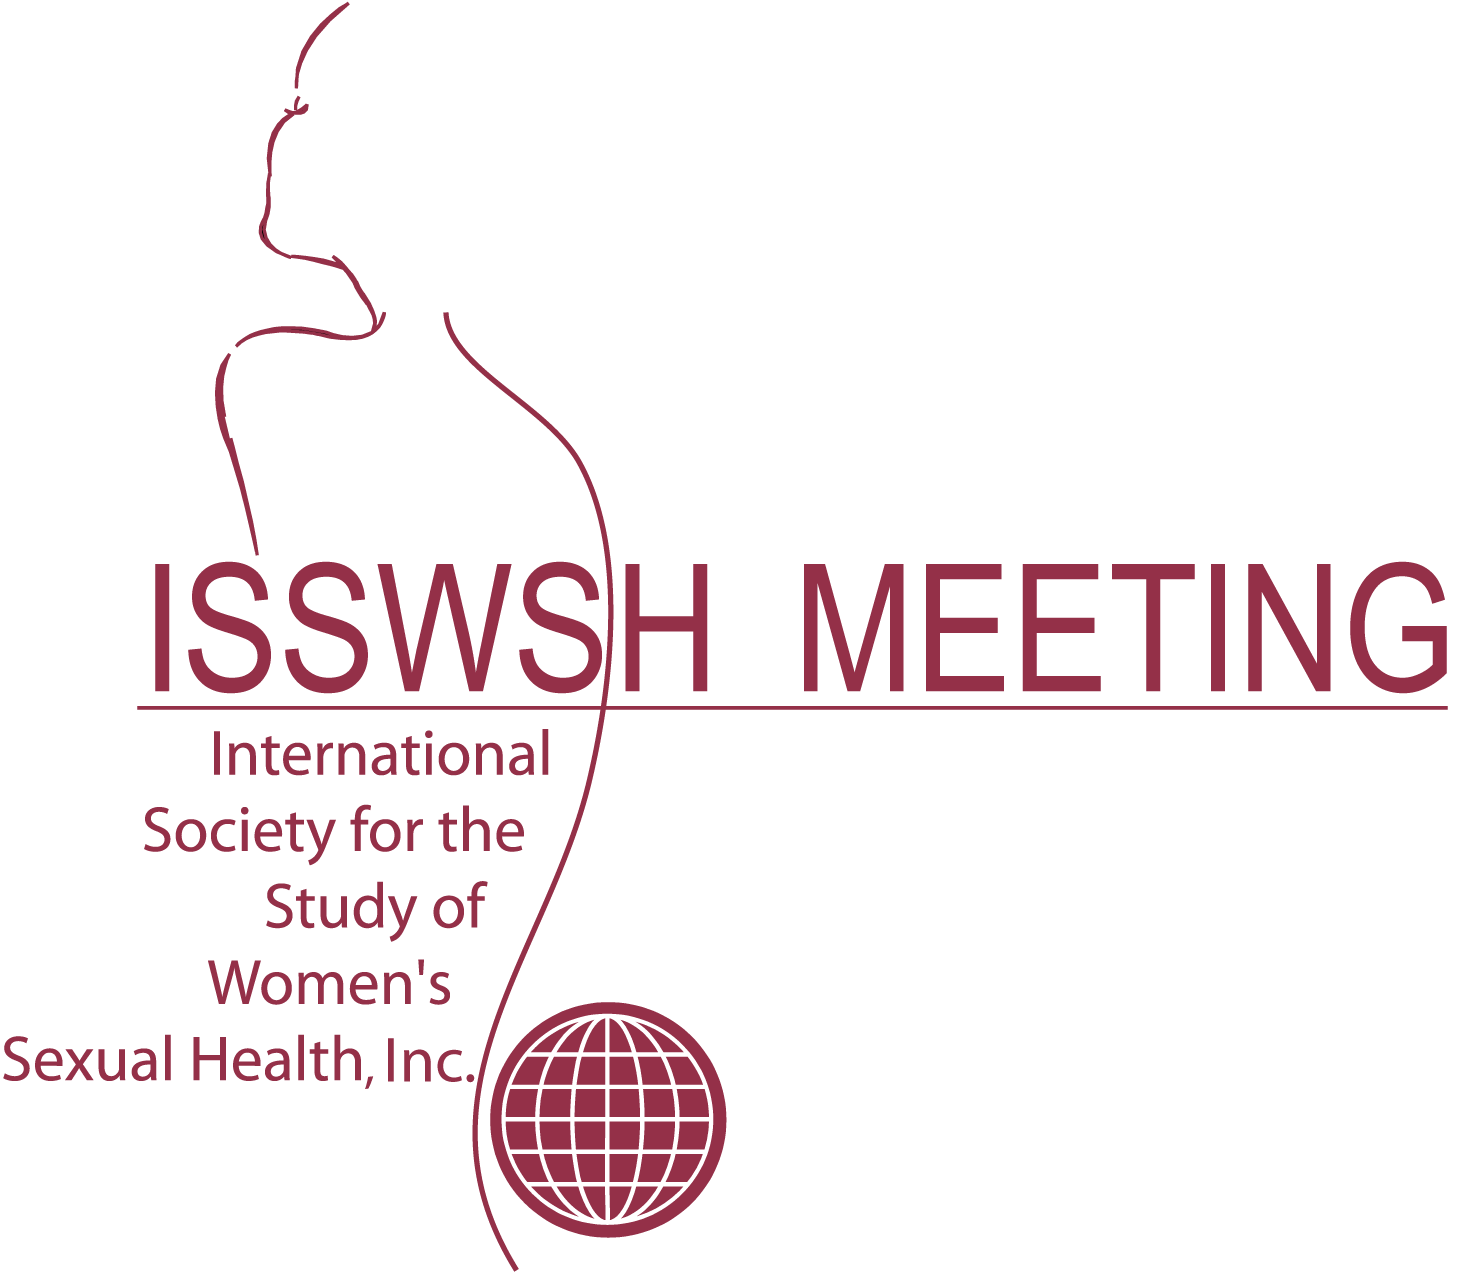 ISSWSH-Meeting-color